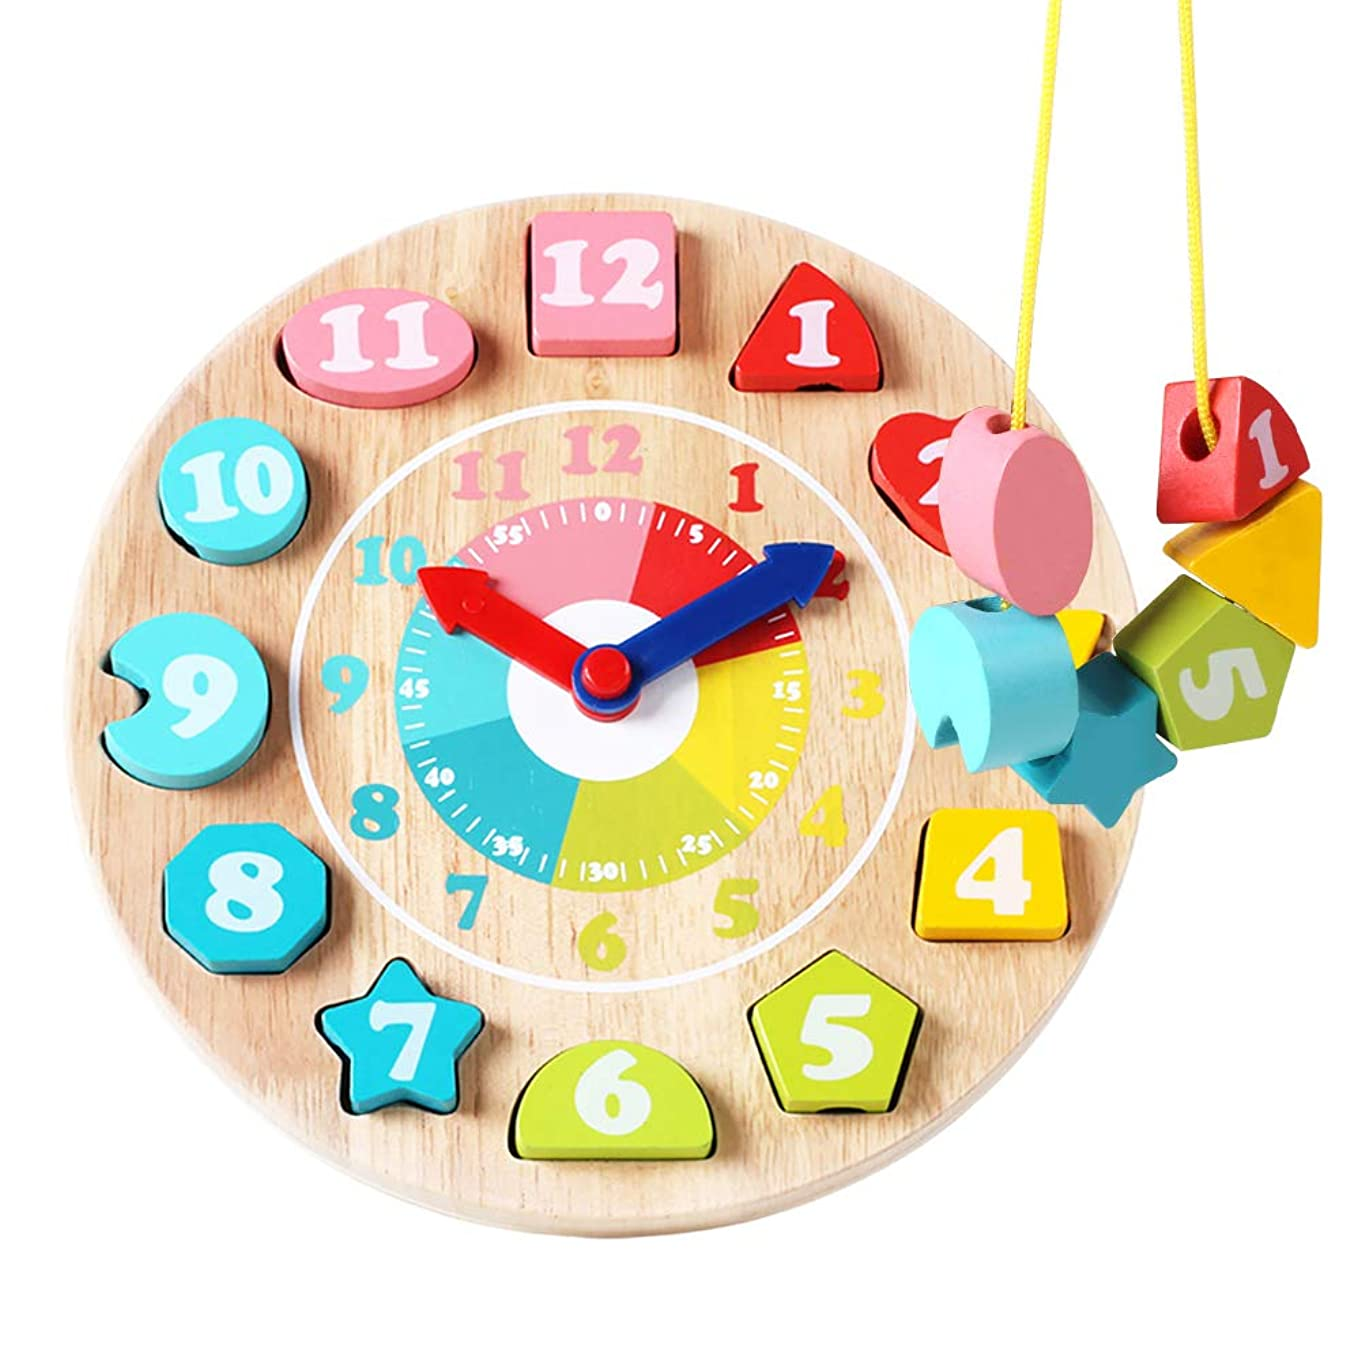 GEMEM Wooden Shape Sorting Clock Teaching Time Number Blocks Lacing Beads Block Learning Educational Toys for Toddlers Boys Girls 3, 4, 5 Years Old